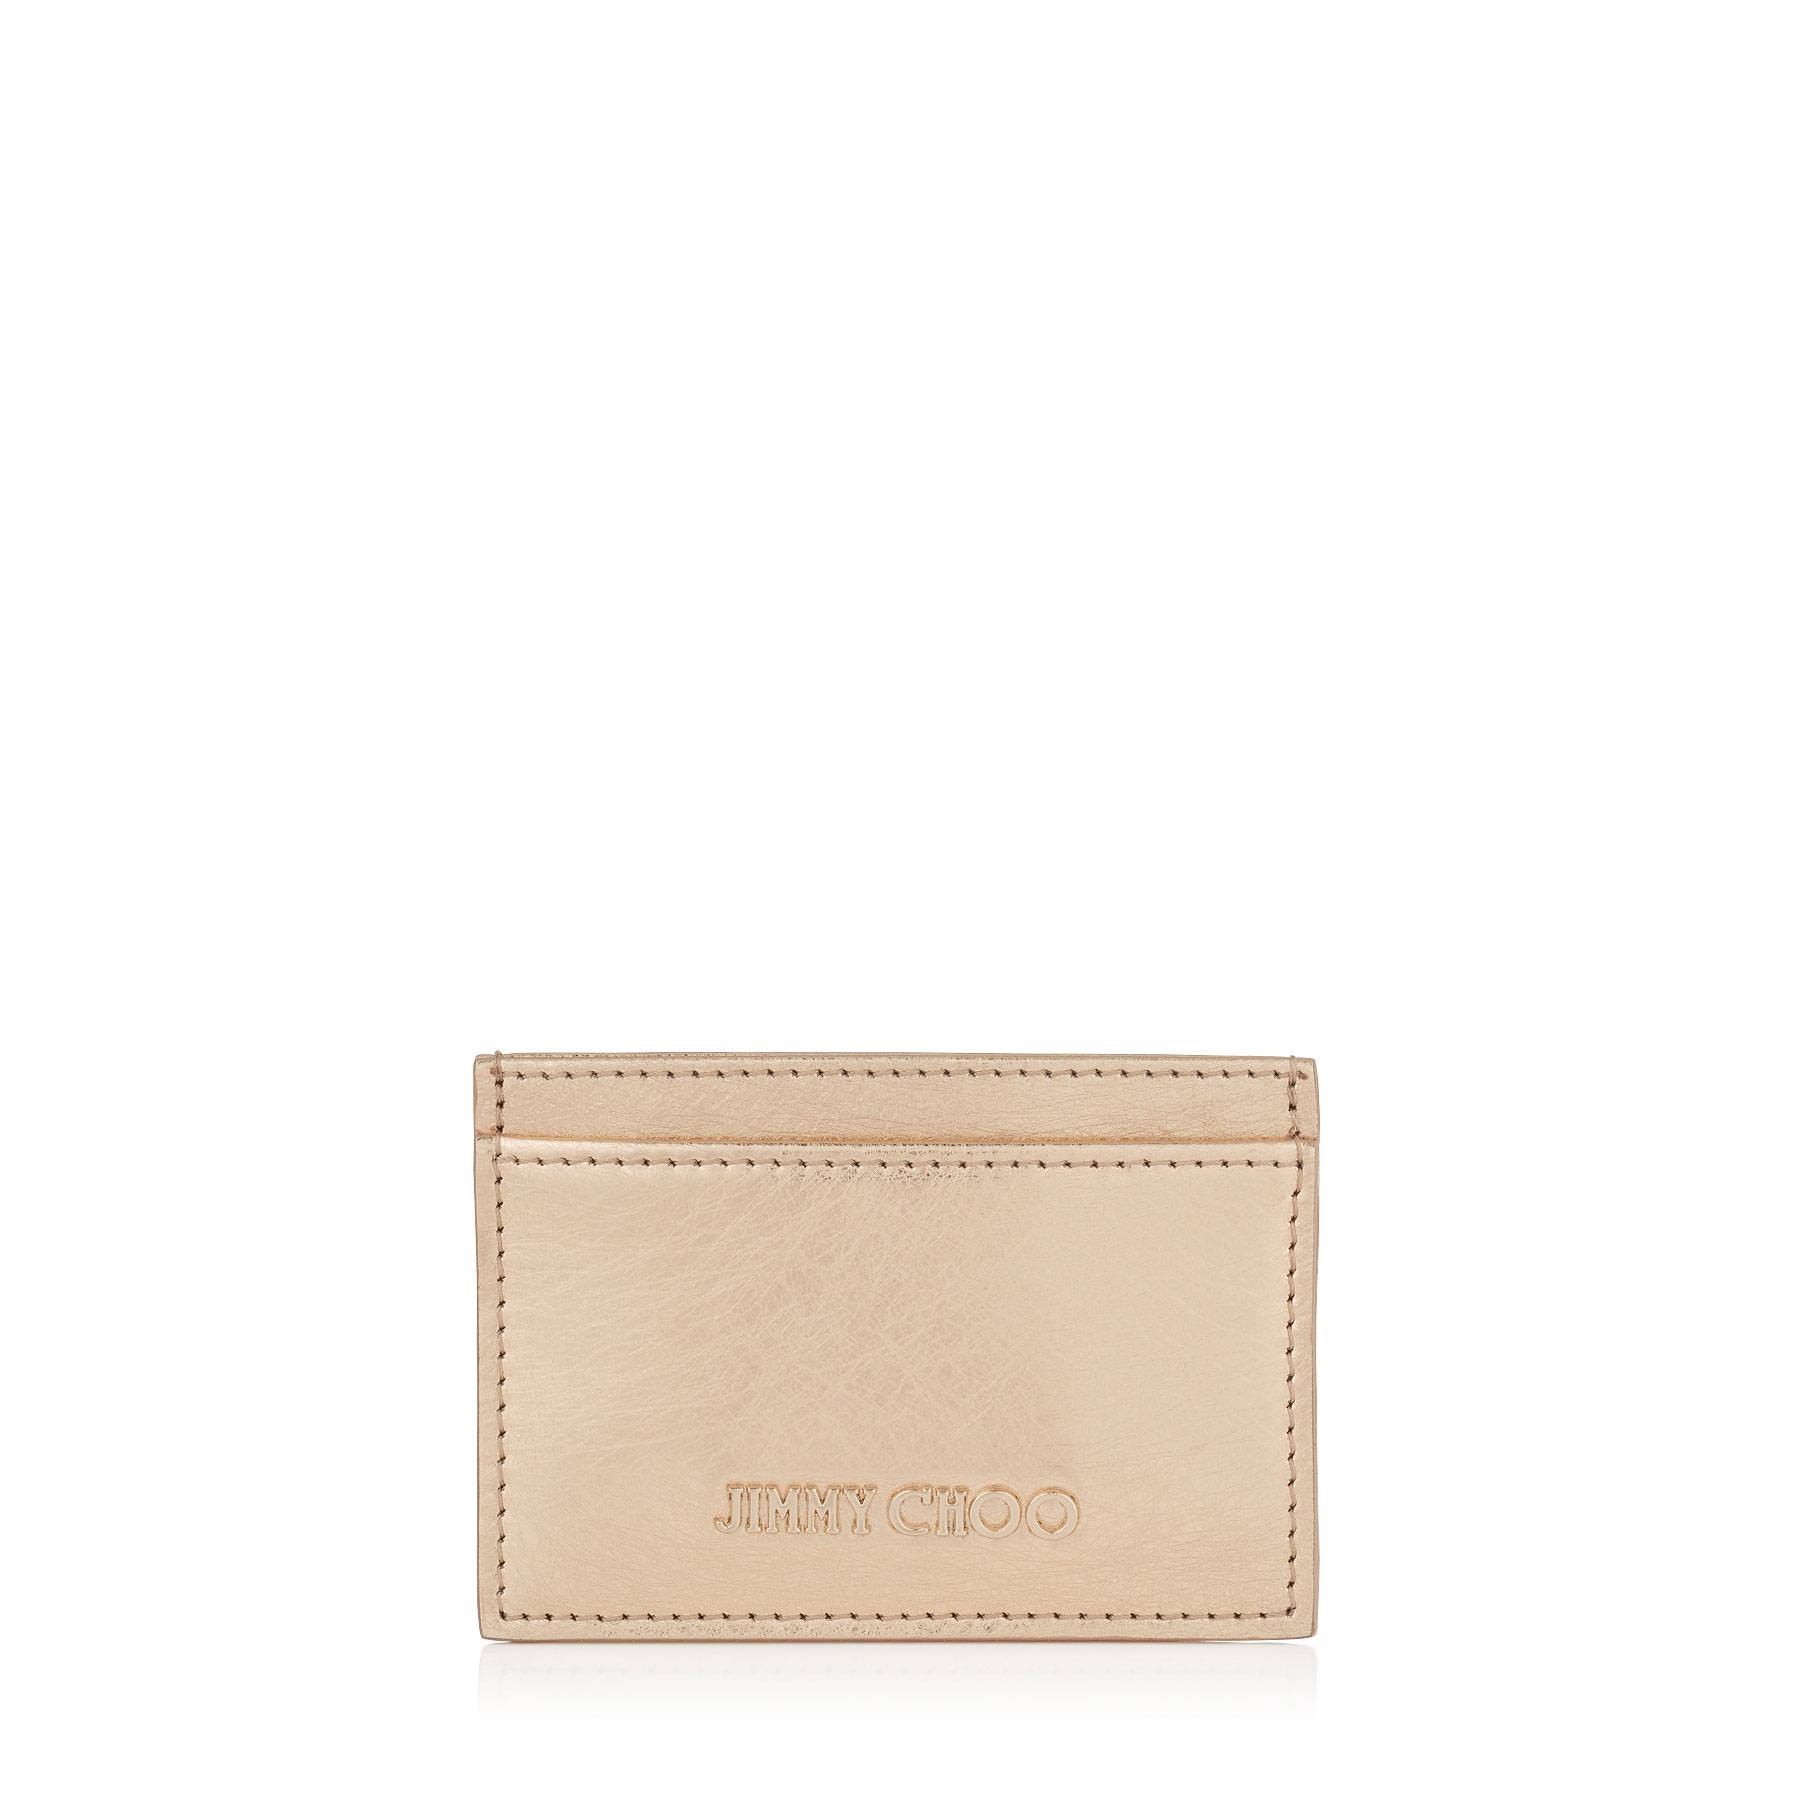 UMIKA Gold Etched Metallic Spazzolato Leather Card Holder